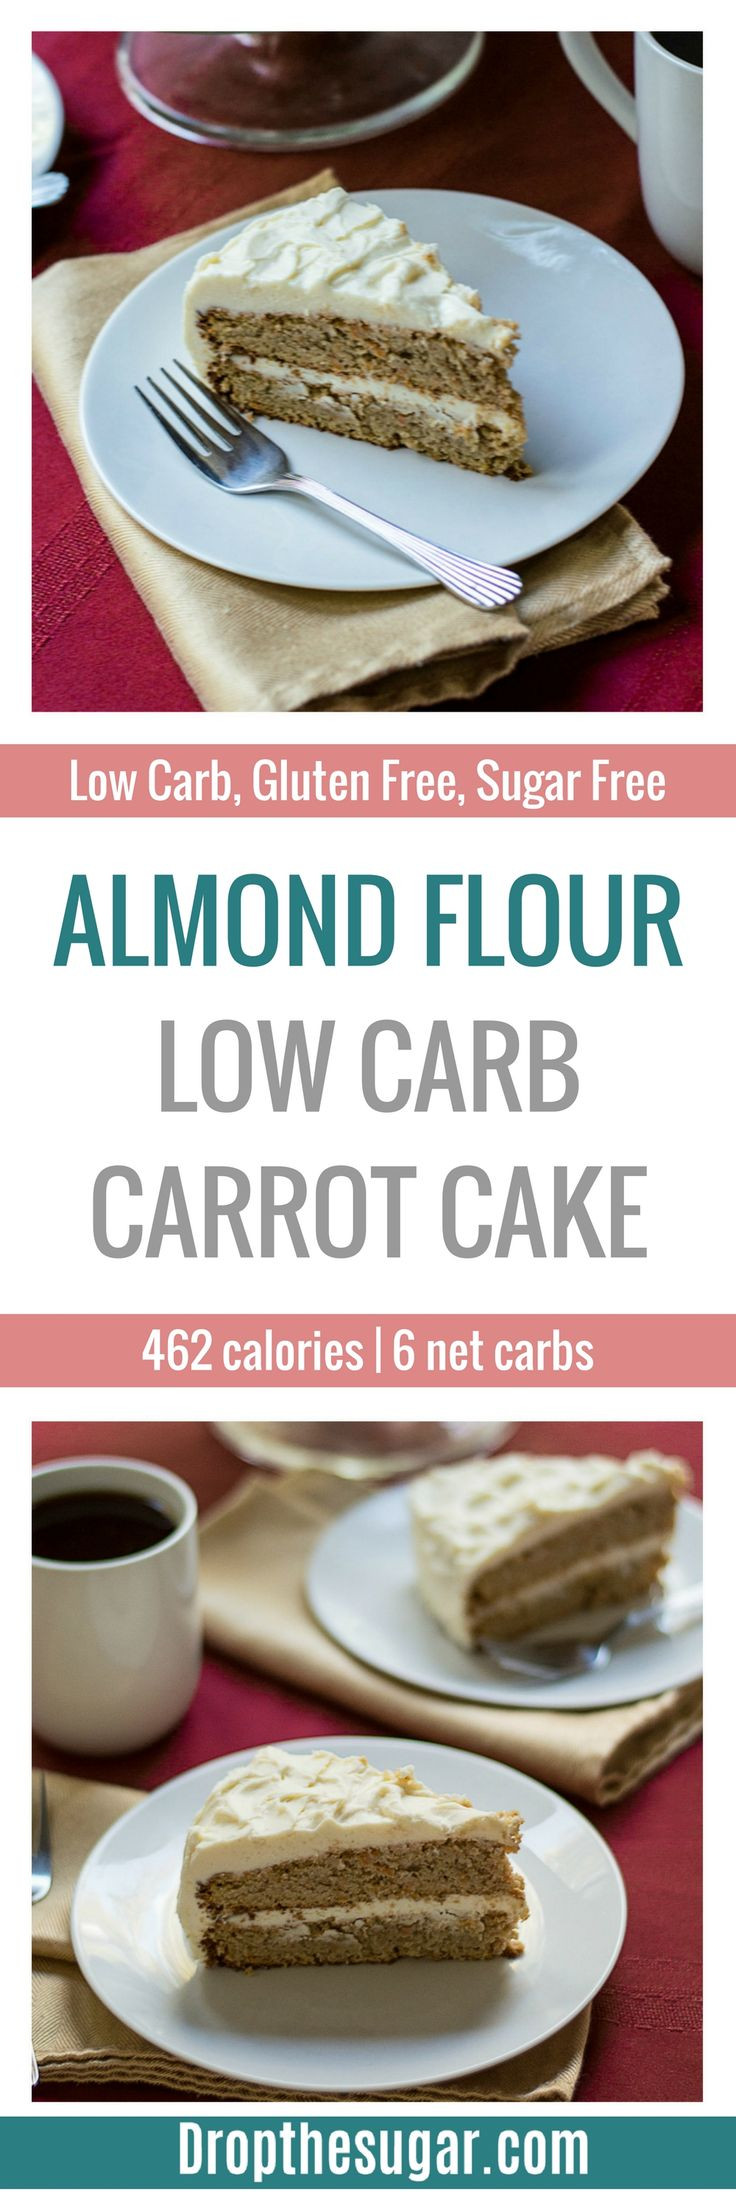 Low Carb Low Sugar Recipes  1000 images about Favorite Low Carb Keto Recipes on